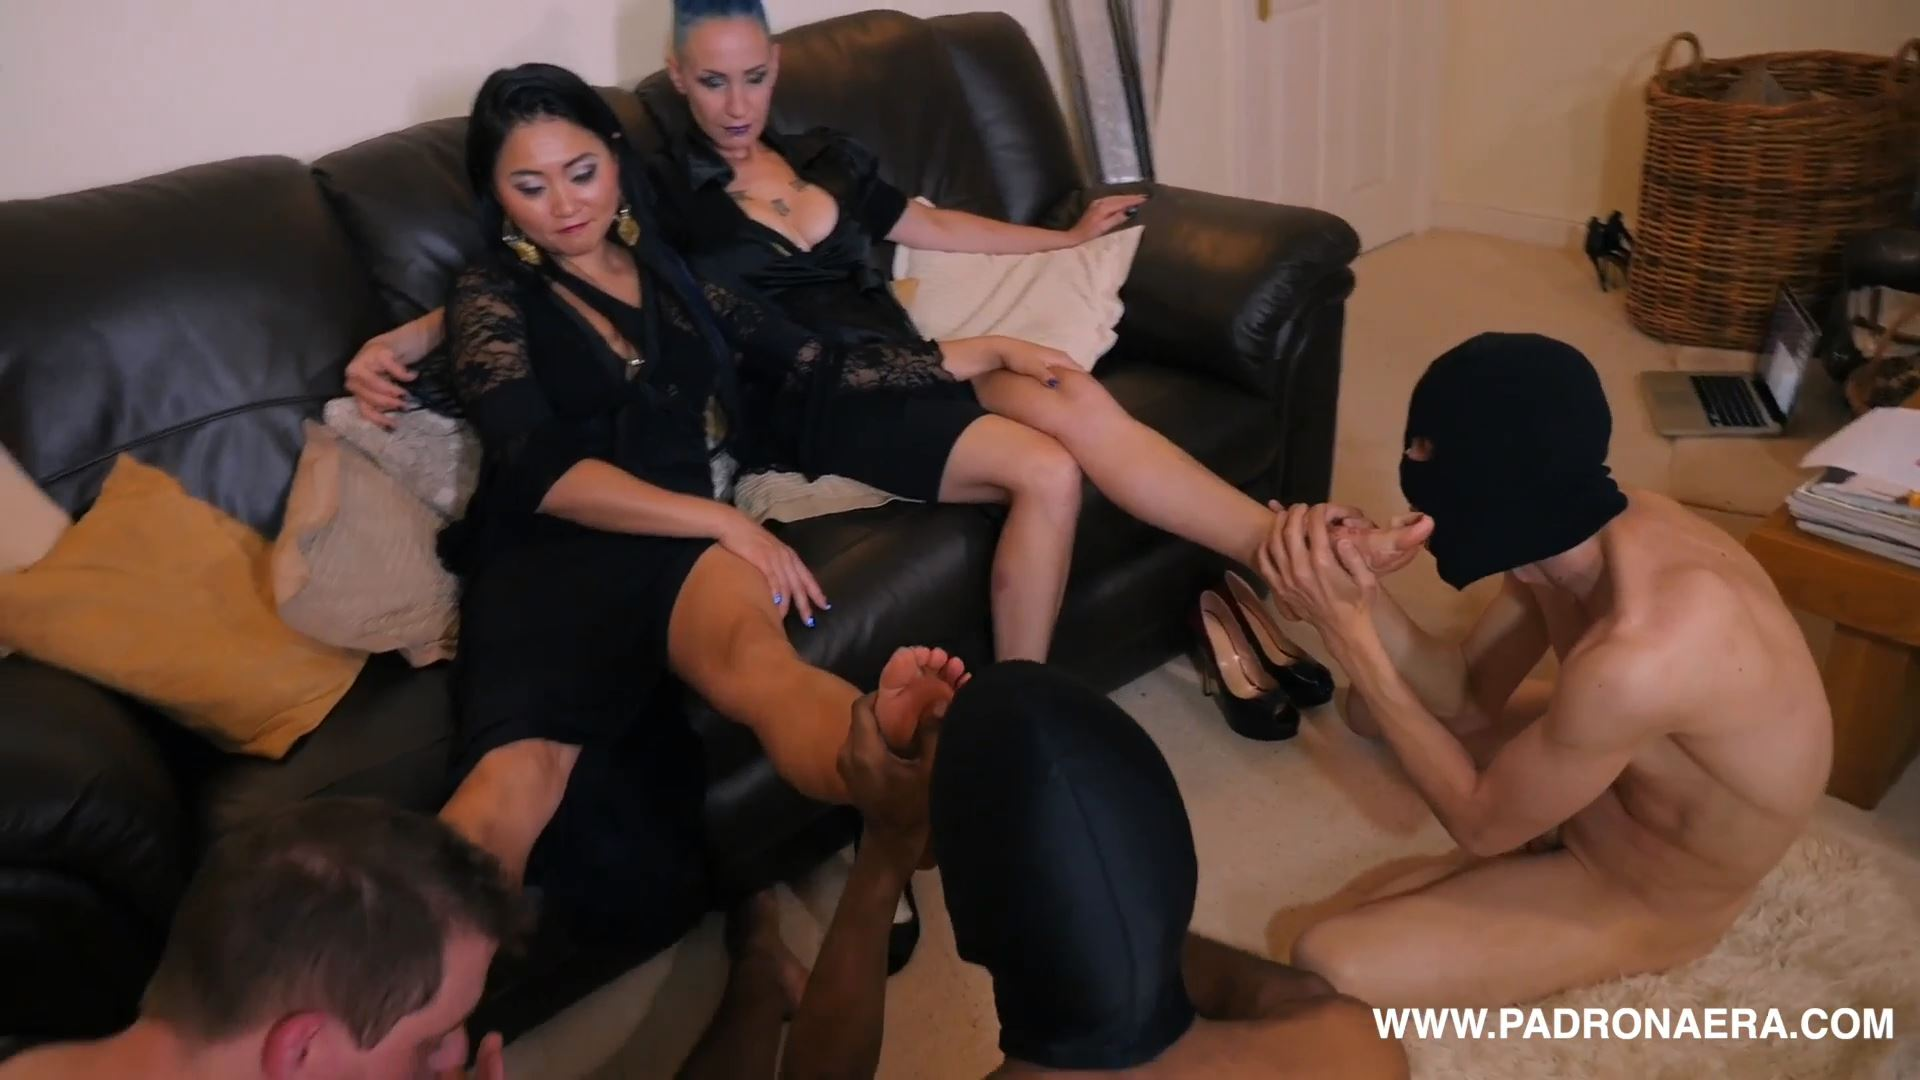 Giada Da Vinci In Scene: FOOT GAGGING COMPETITION IN THE LUXURY LOUNGE - PADRONAERA - FULL HD/1080p/MP4